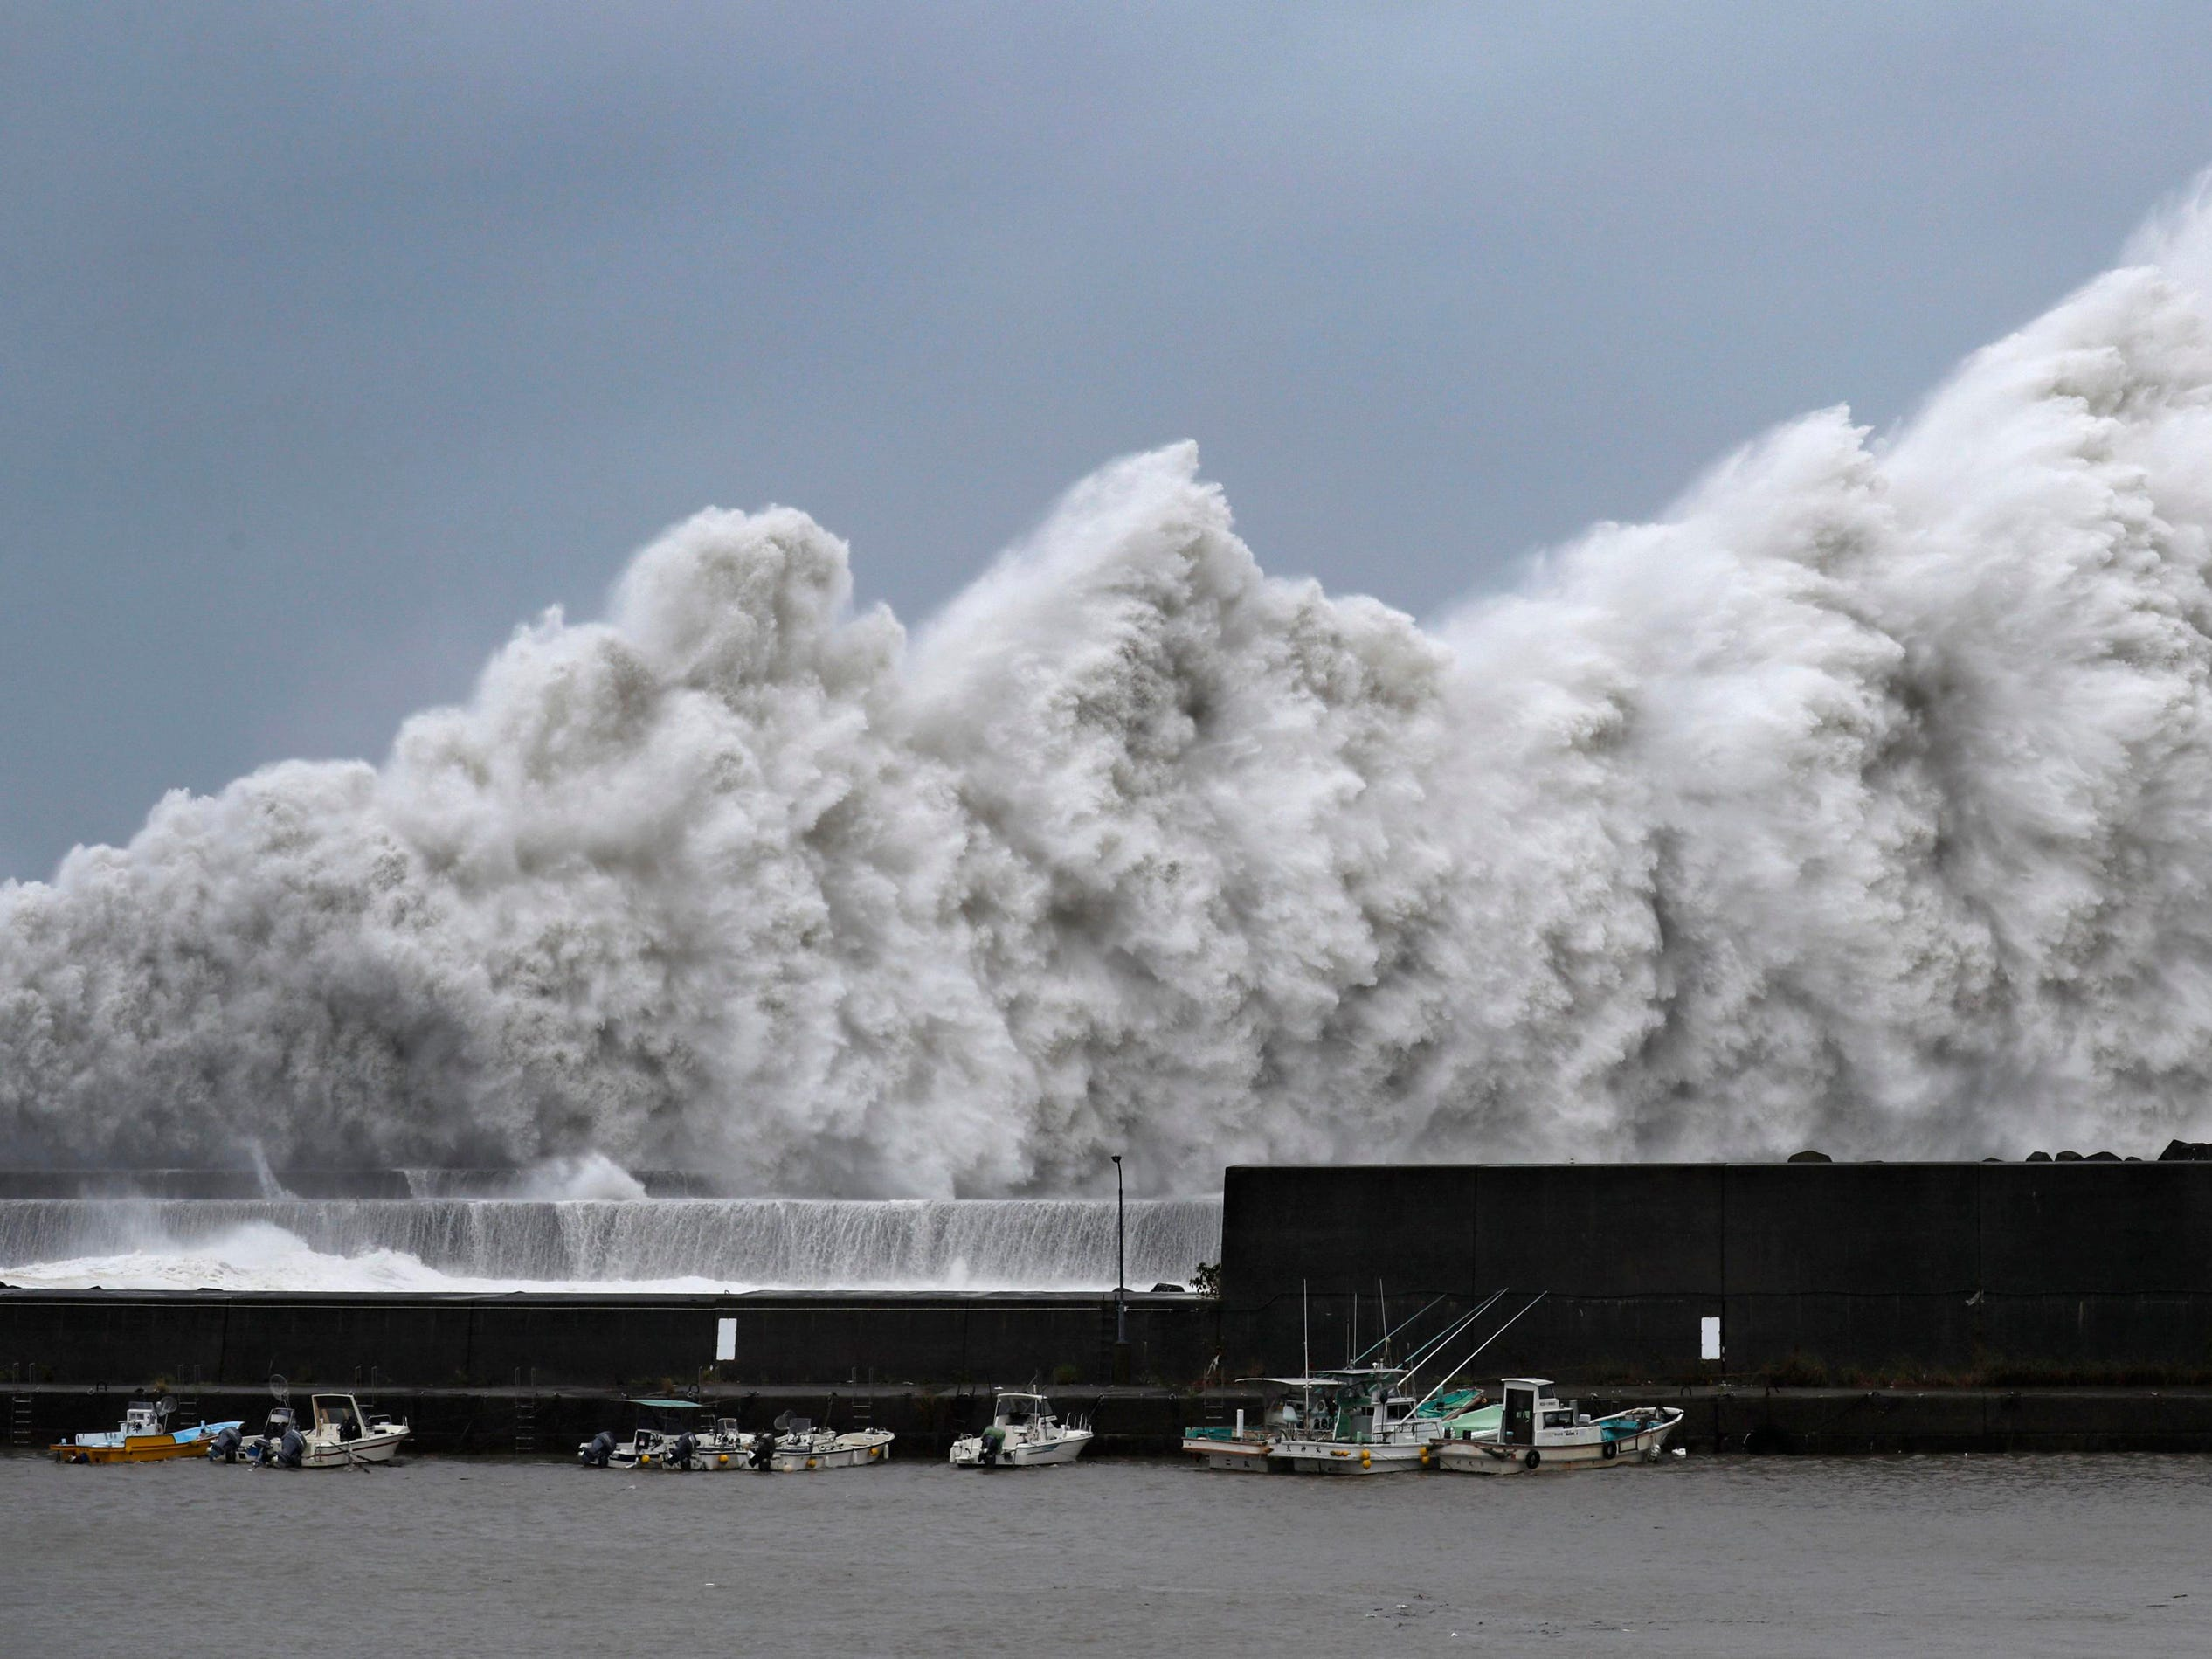 CORRECTS NAME OF PHOTOGRAPHER - High waves hit breakwaters at a port of Aki, Kochi prefecture, western Japan, Tuesday Sept. 4, 2018. Powerful Typhoon Jebi is approaching Japan's Pacific coast and forecast to bring heavy rain and high winds to much of the country. (Ichiro Banno/Kyodo News via AP) ORG XMIT: XEH801